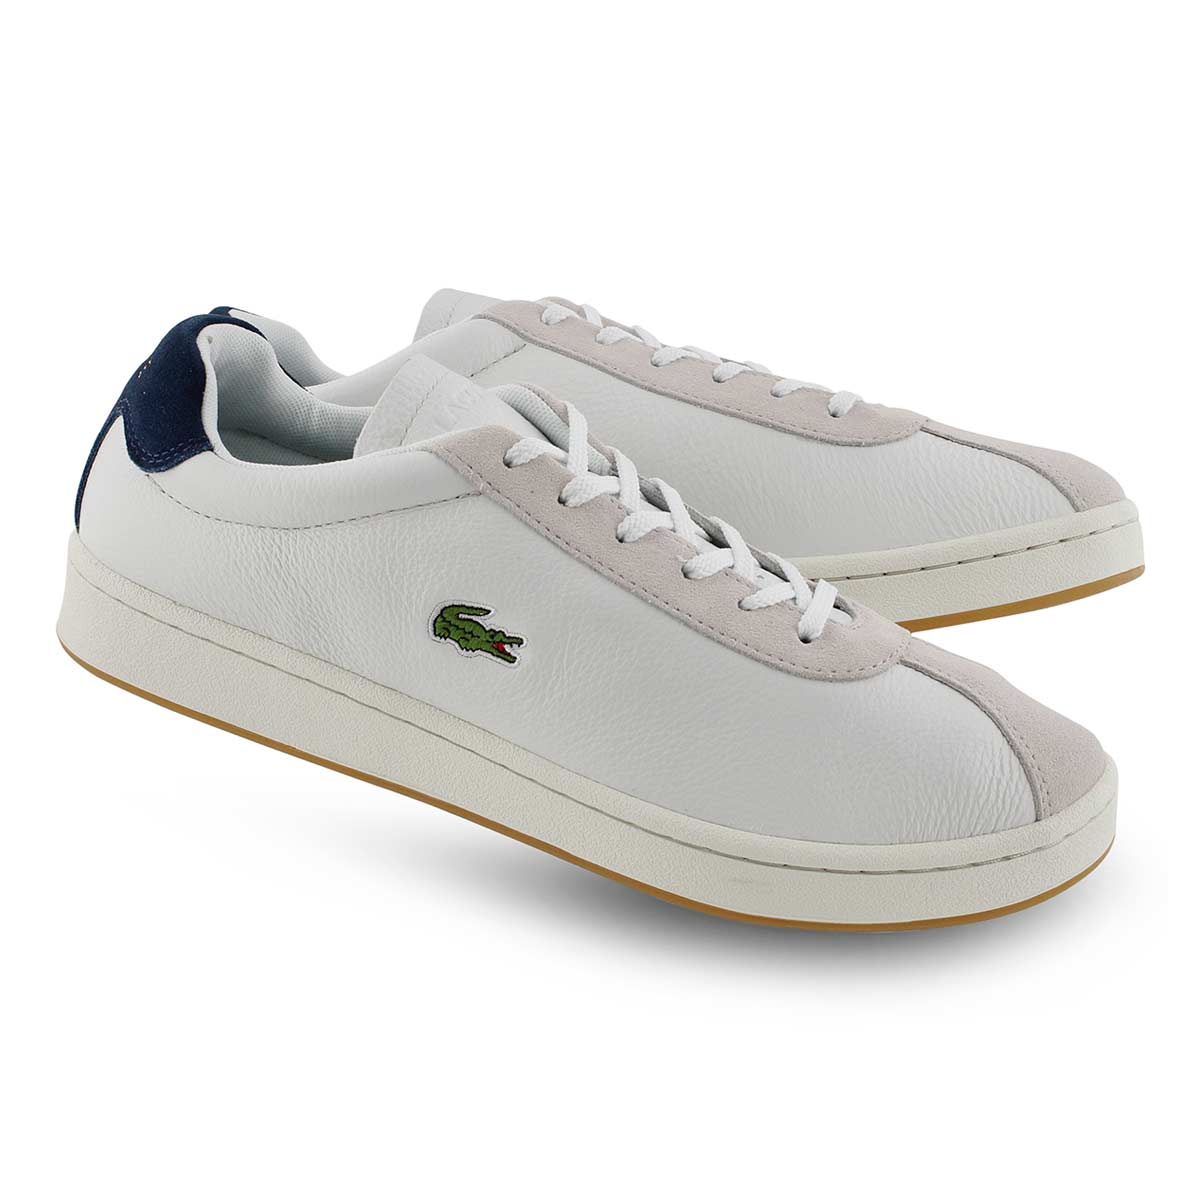 Mns Masters 119 3 wht/nvy laceup sneaker